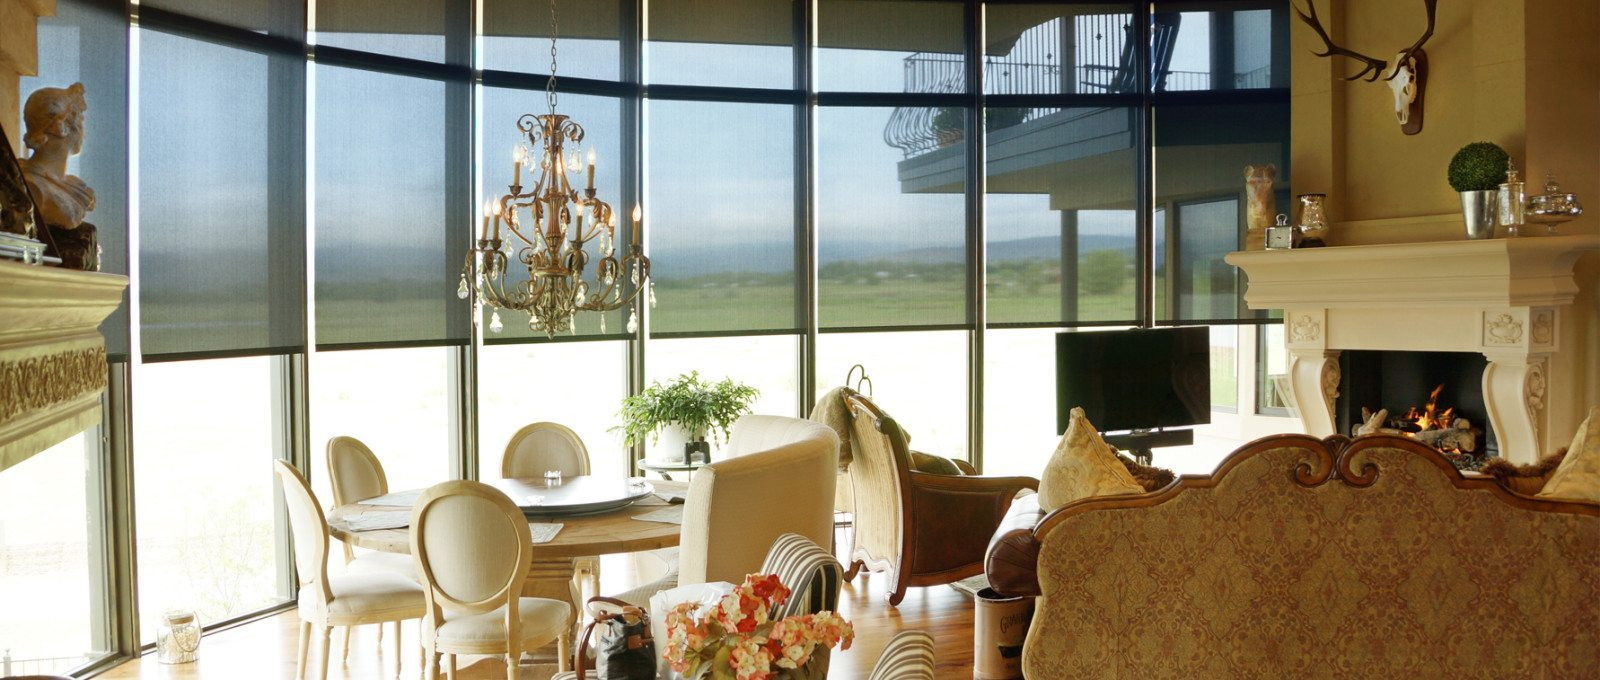 Solar shades minimize heat gain without blocking light or a view.